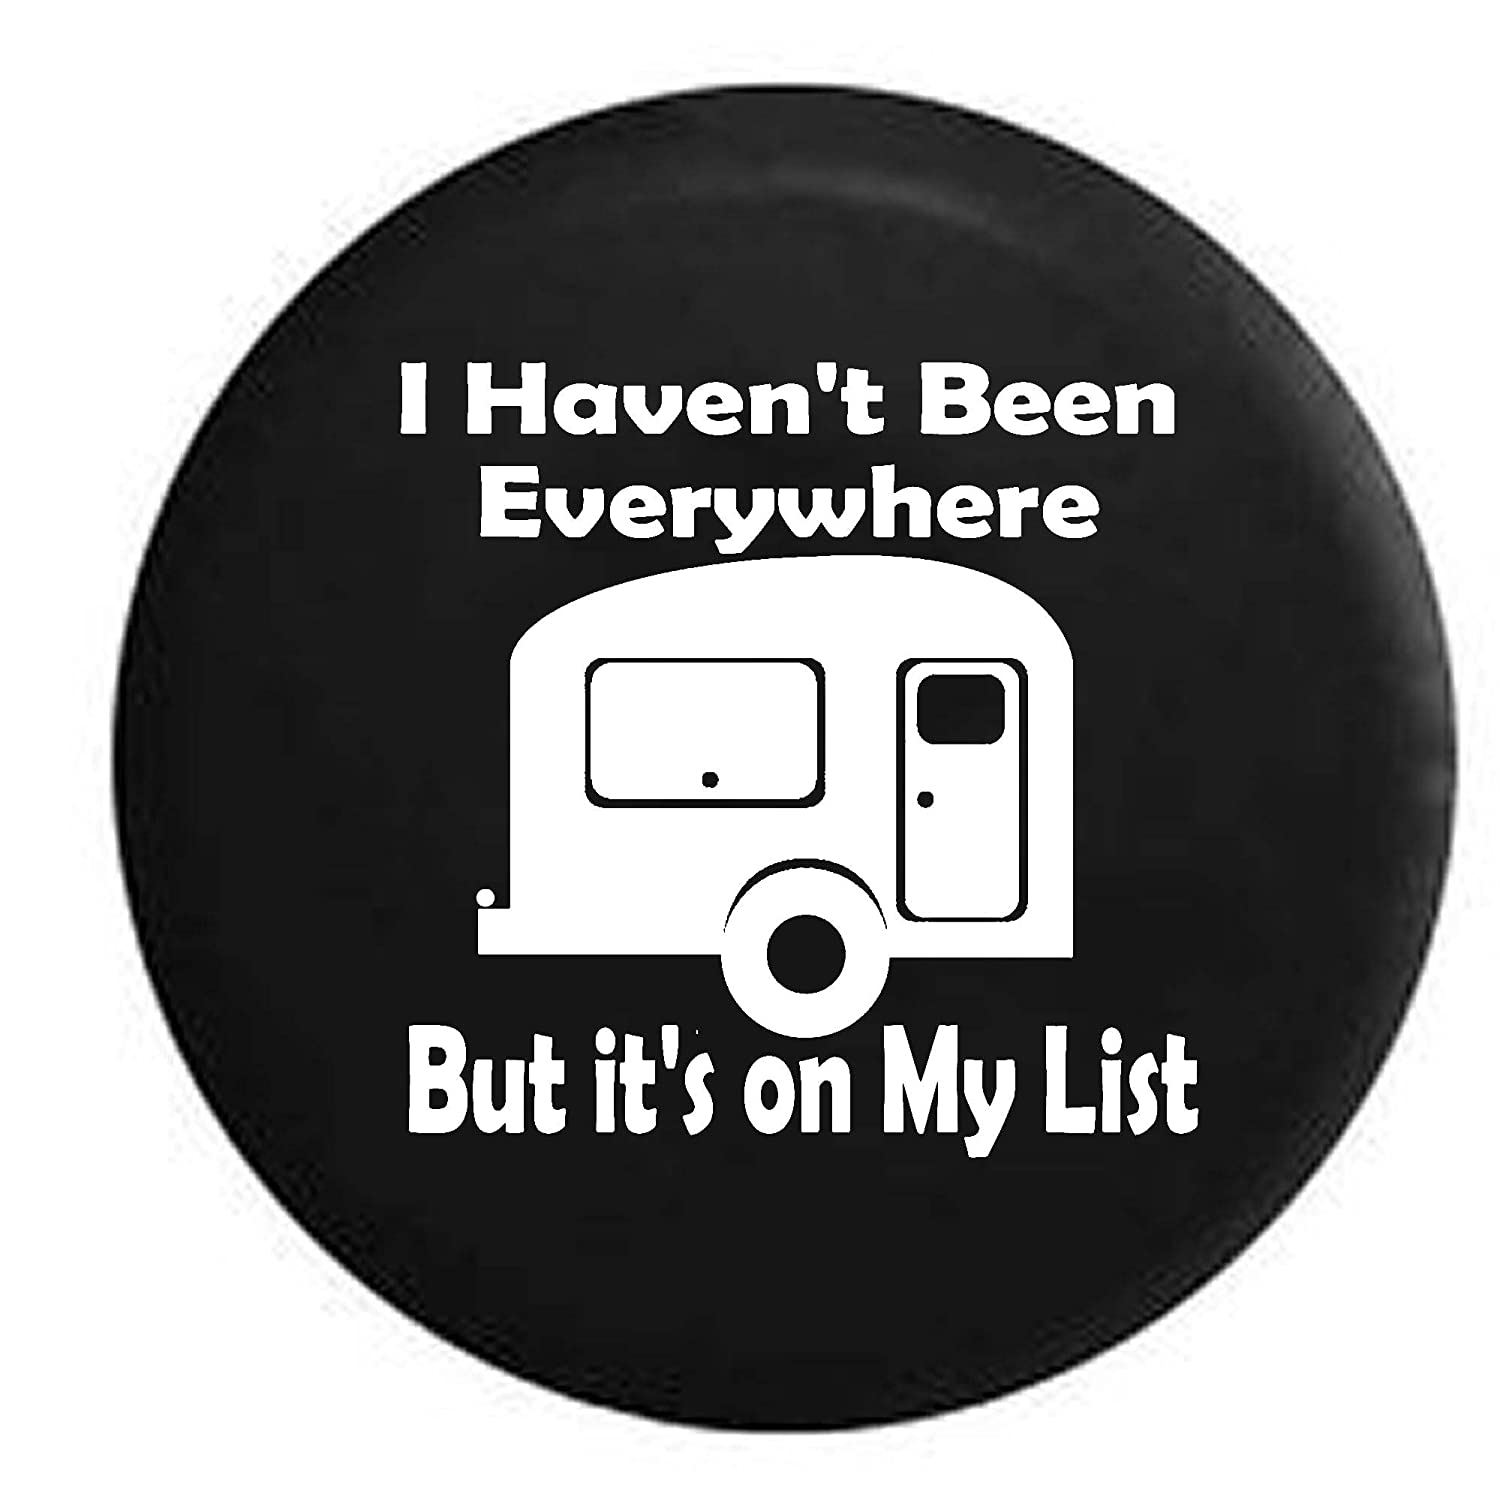 Pike Outdoors I Havent Been Everywhere But Its on My List Camper RV Travel Vacation Spare Tire Cover OEM Vinyl Black 27.5 in